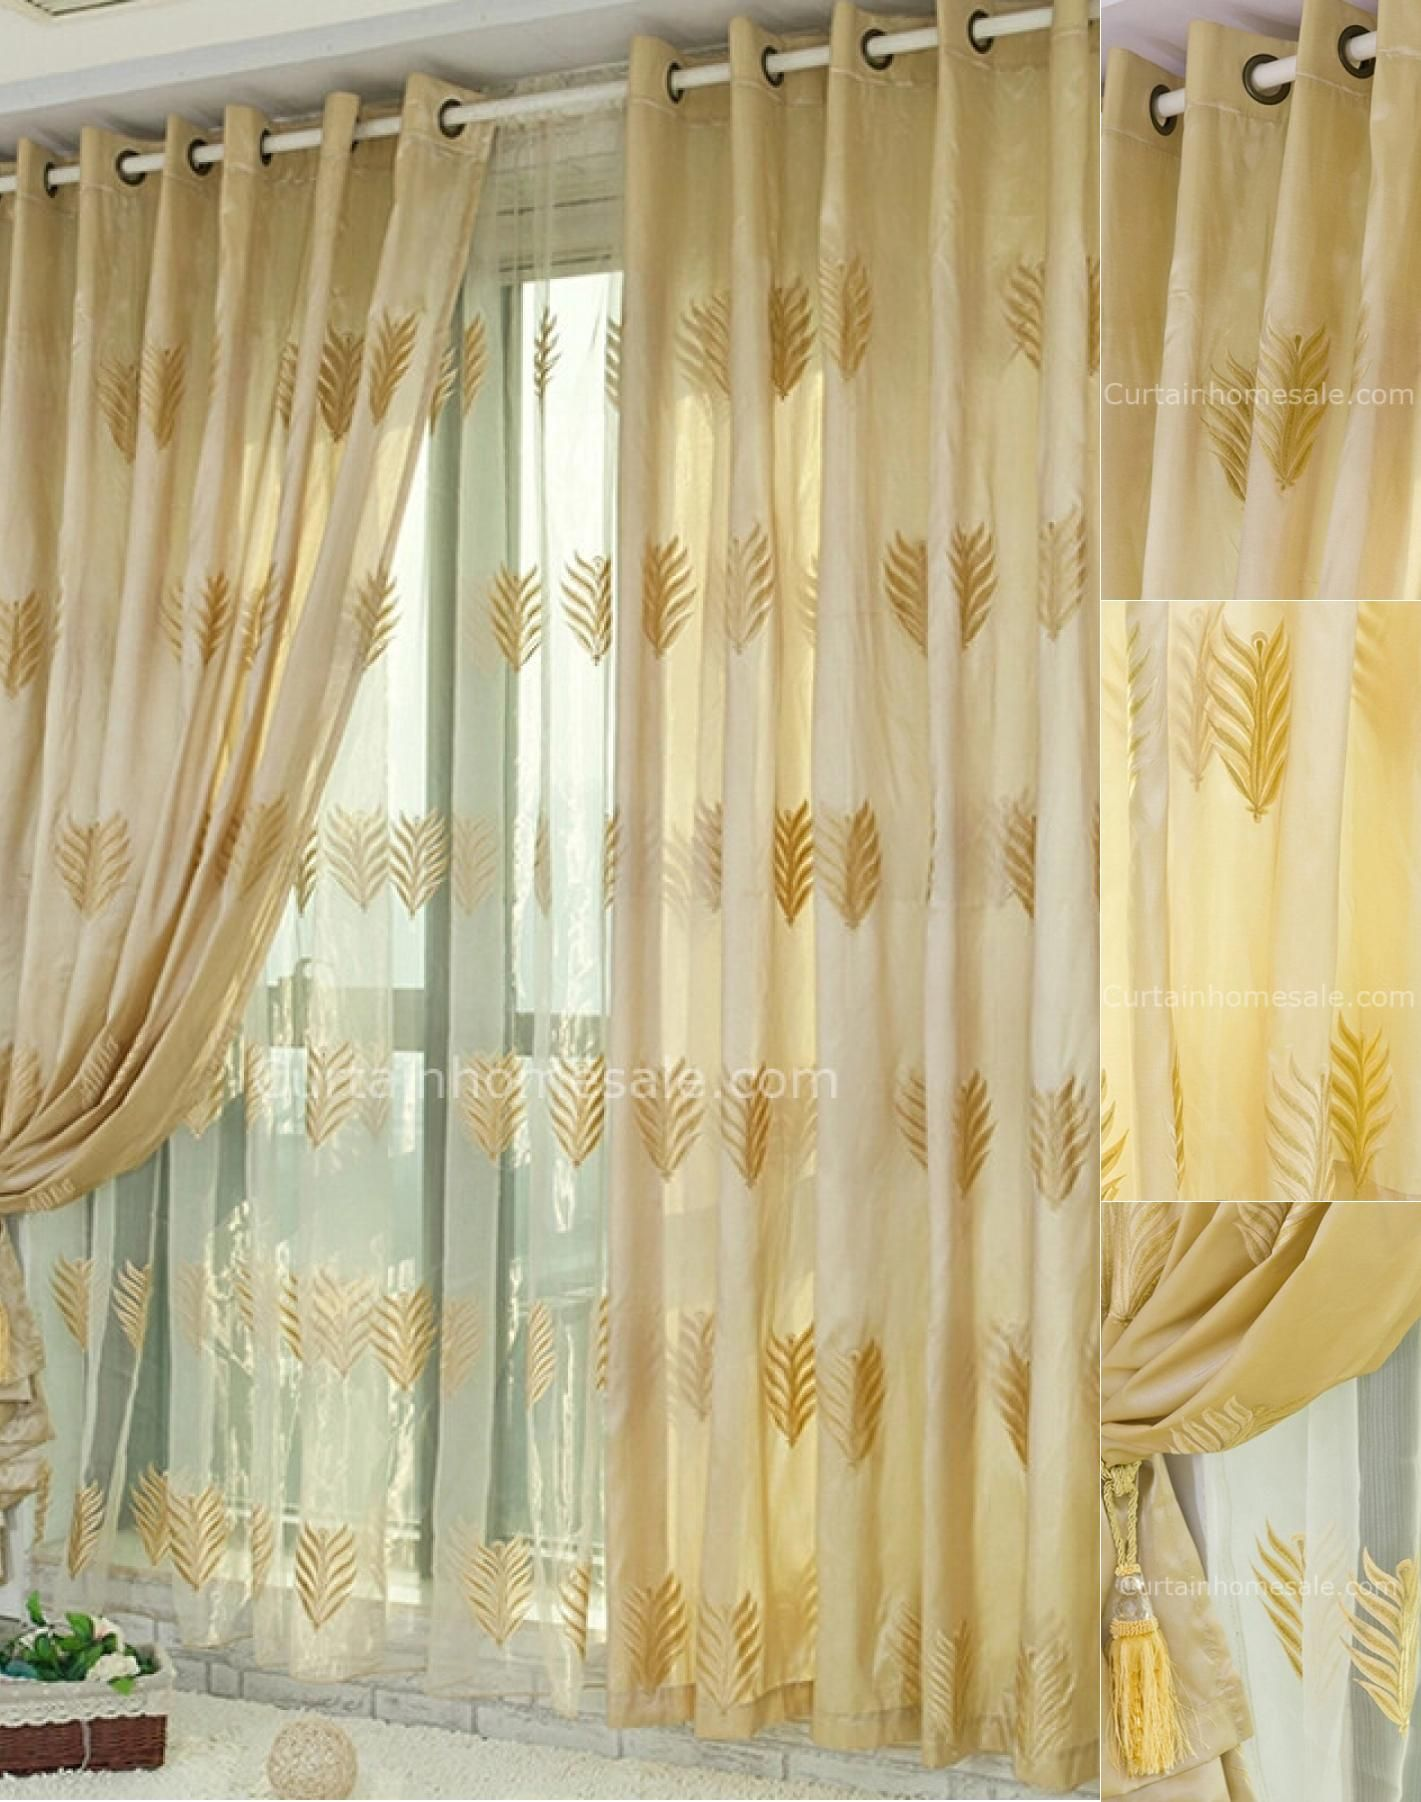 Fabulous Leaf Patterns Embroidery Bedroom Blackout Yellow Gold